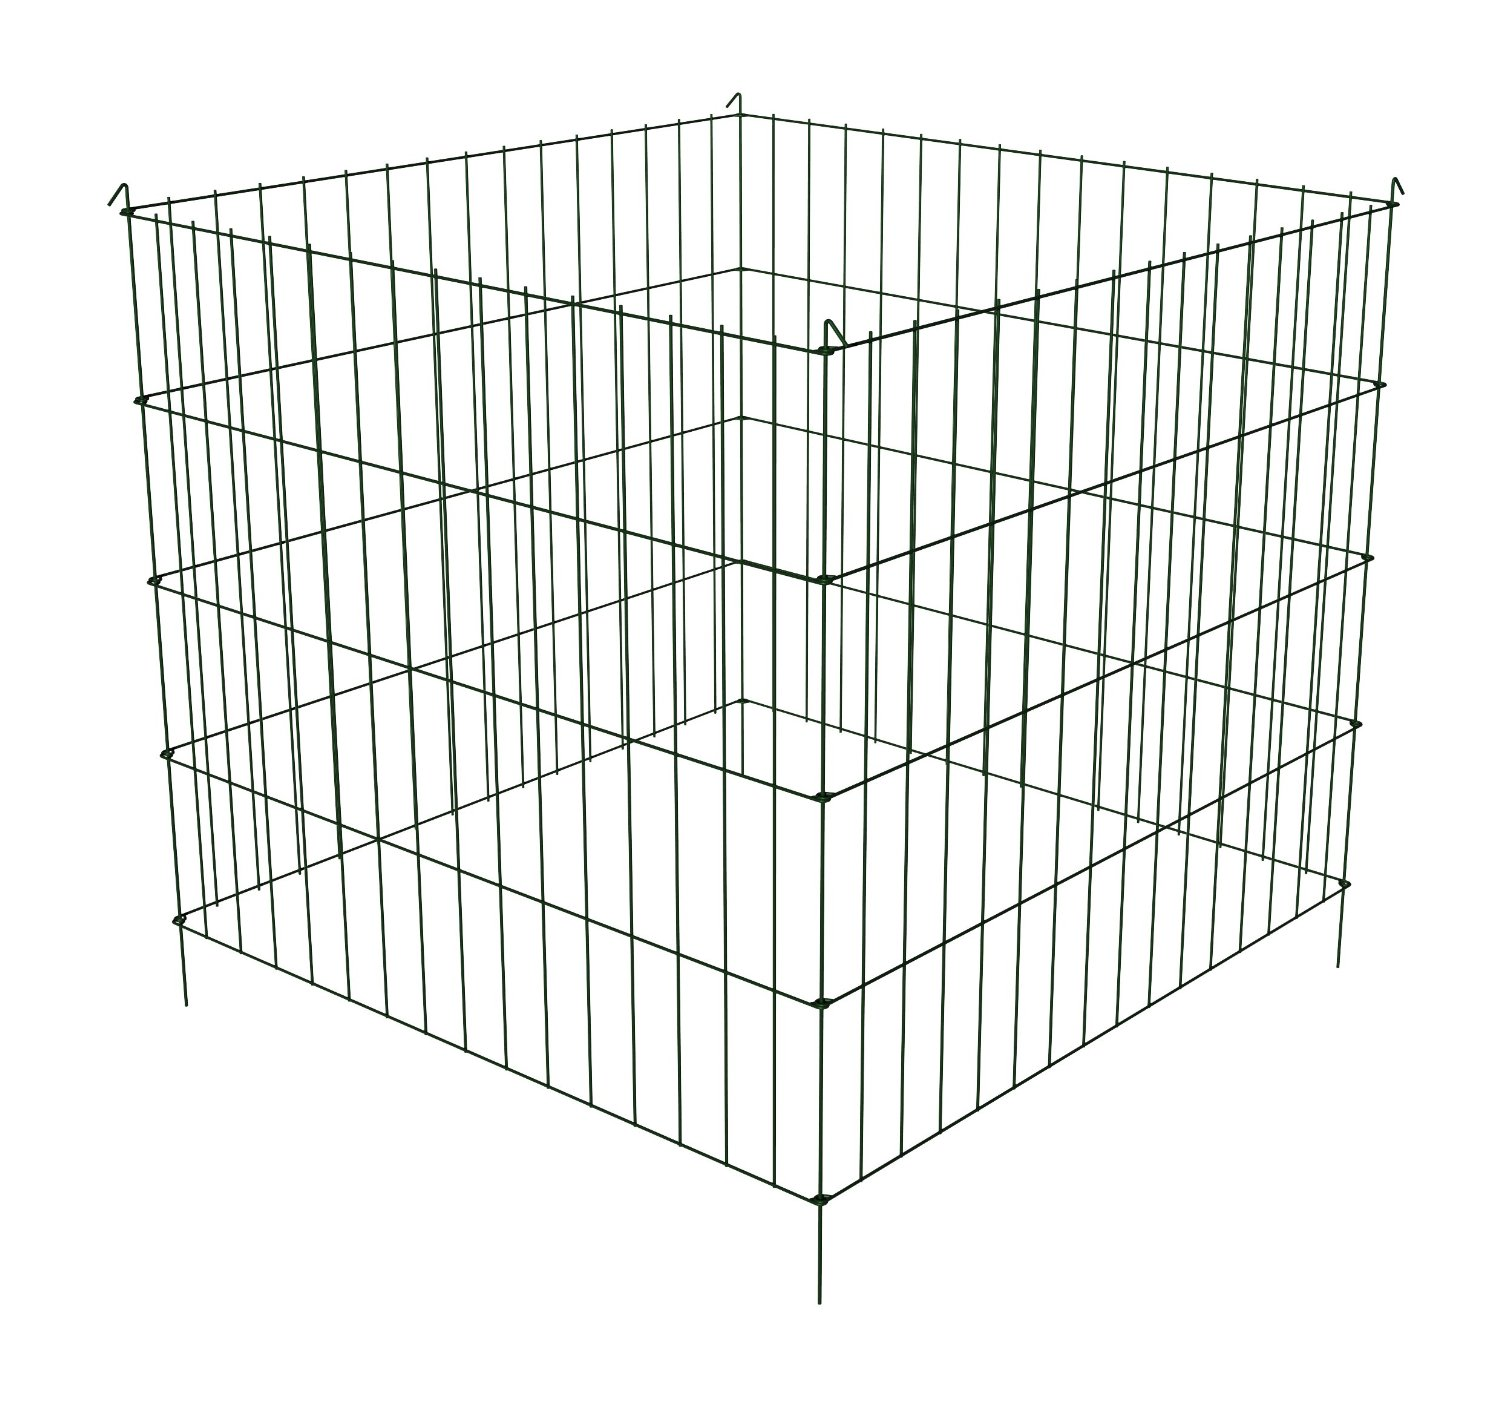 "Panacea 89560 Wire Compost Bin, 30"" H x 36"" W x 36"" D by Panacea Products"